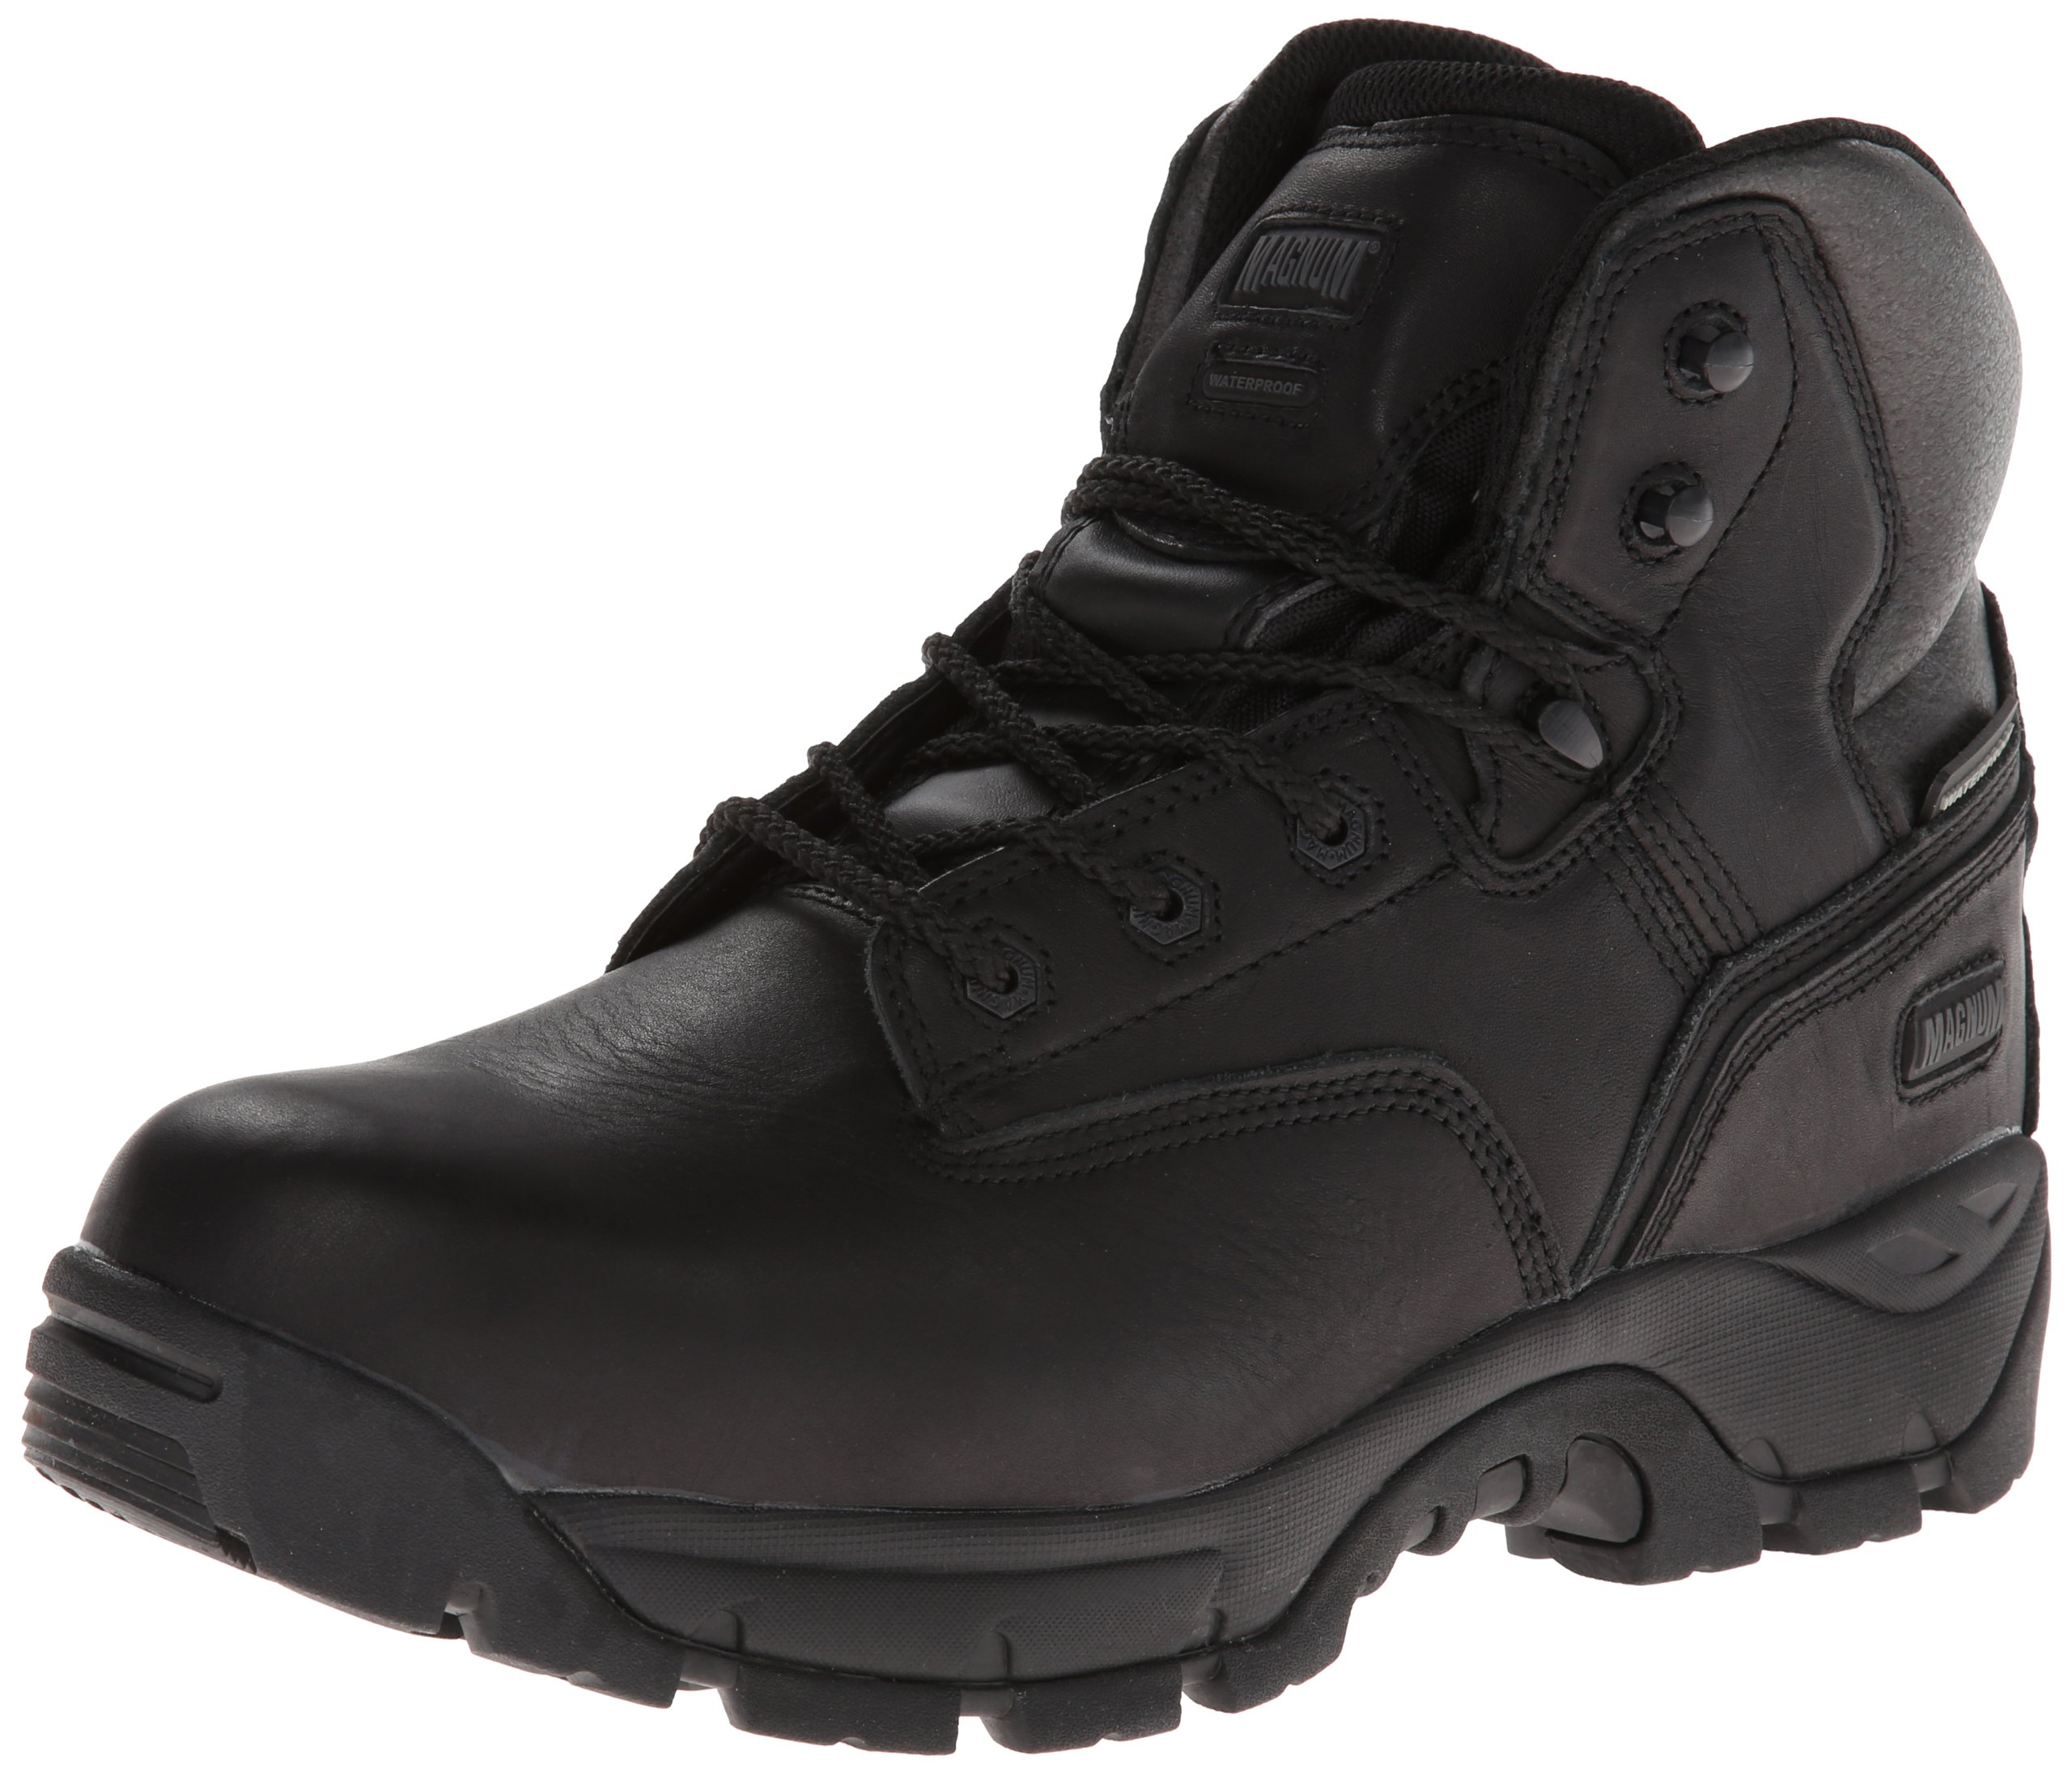 Magnum Men's Precision Ultra Lite II Waterproof Comp Toe Boot,Black,10.5 M US